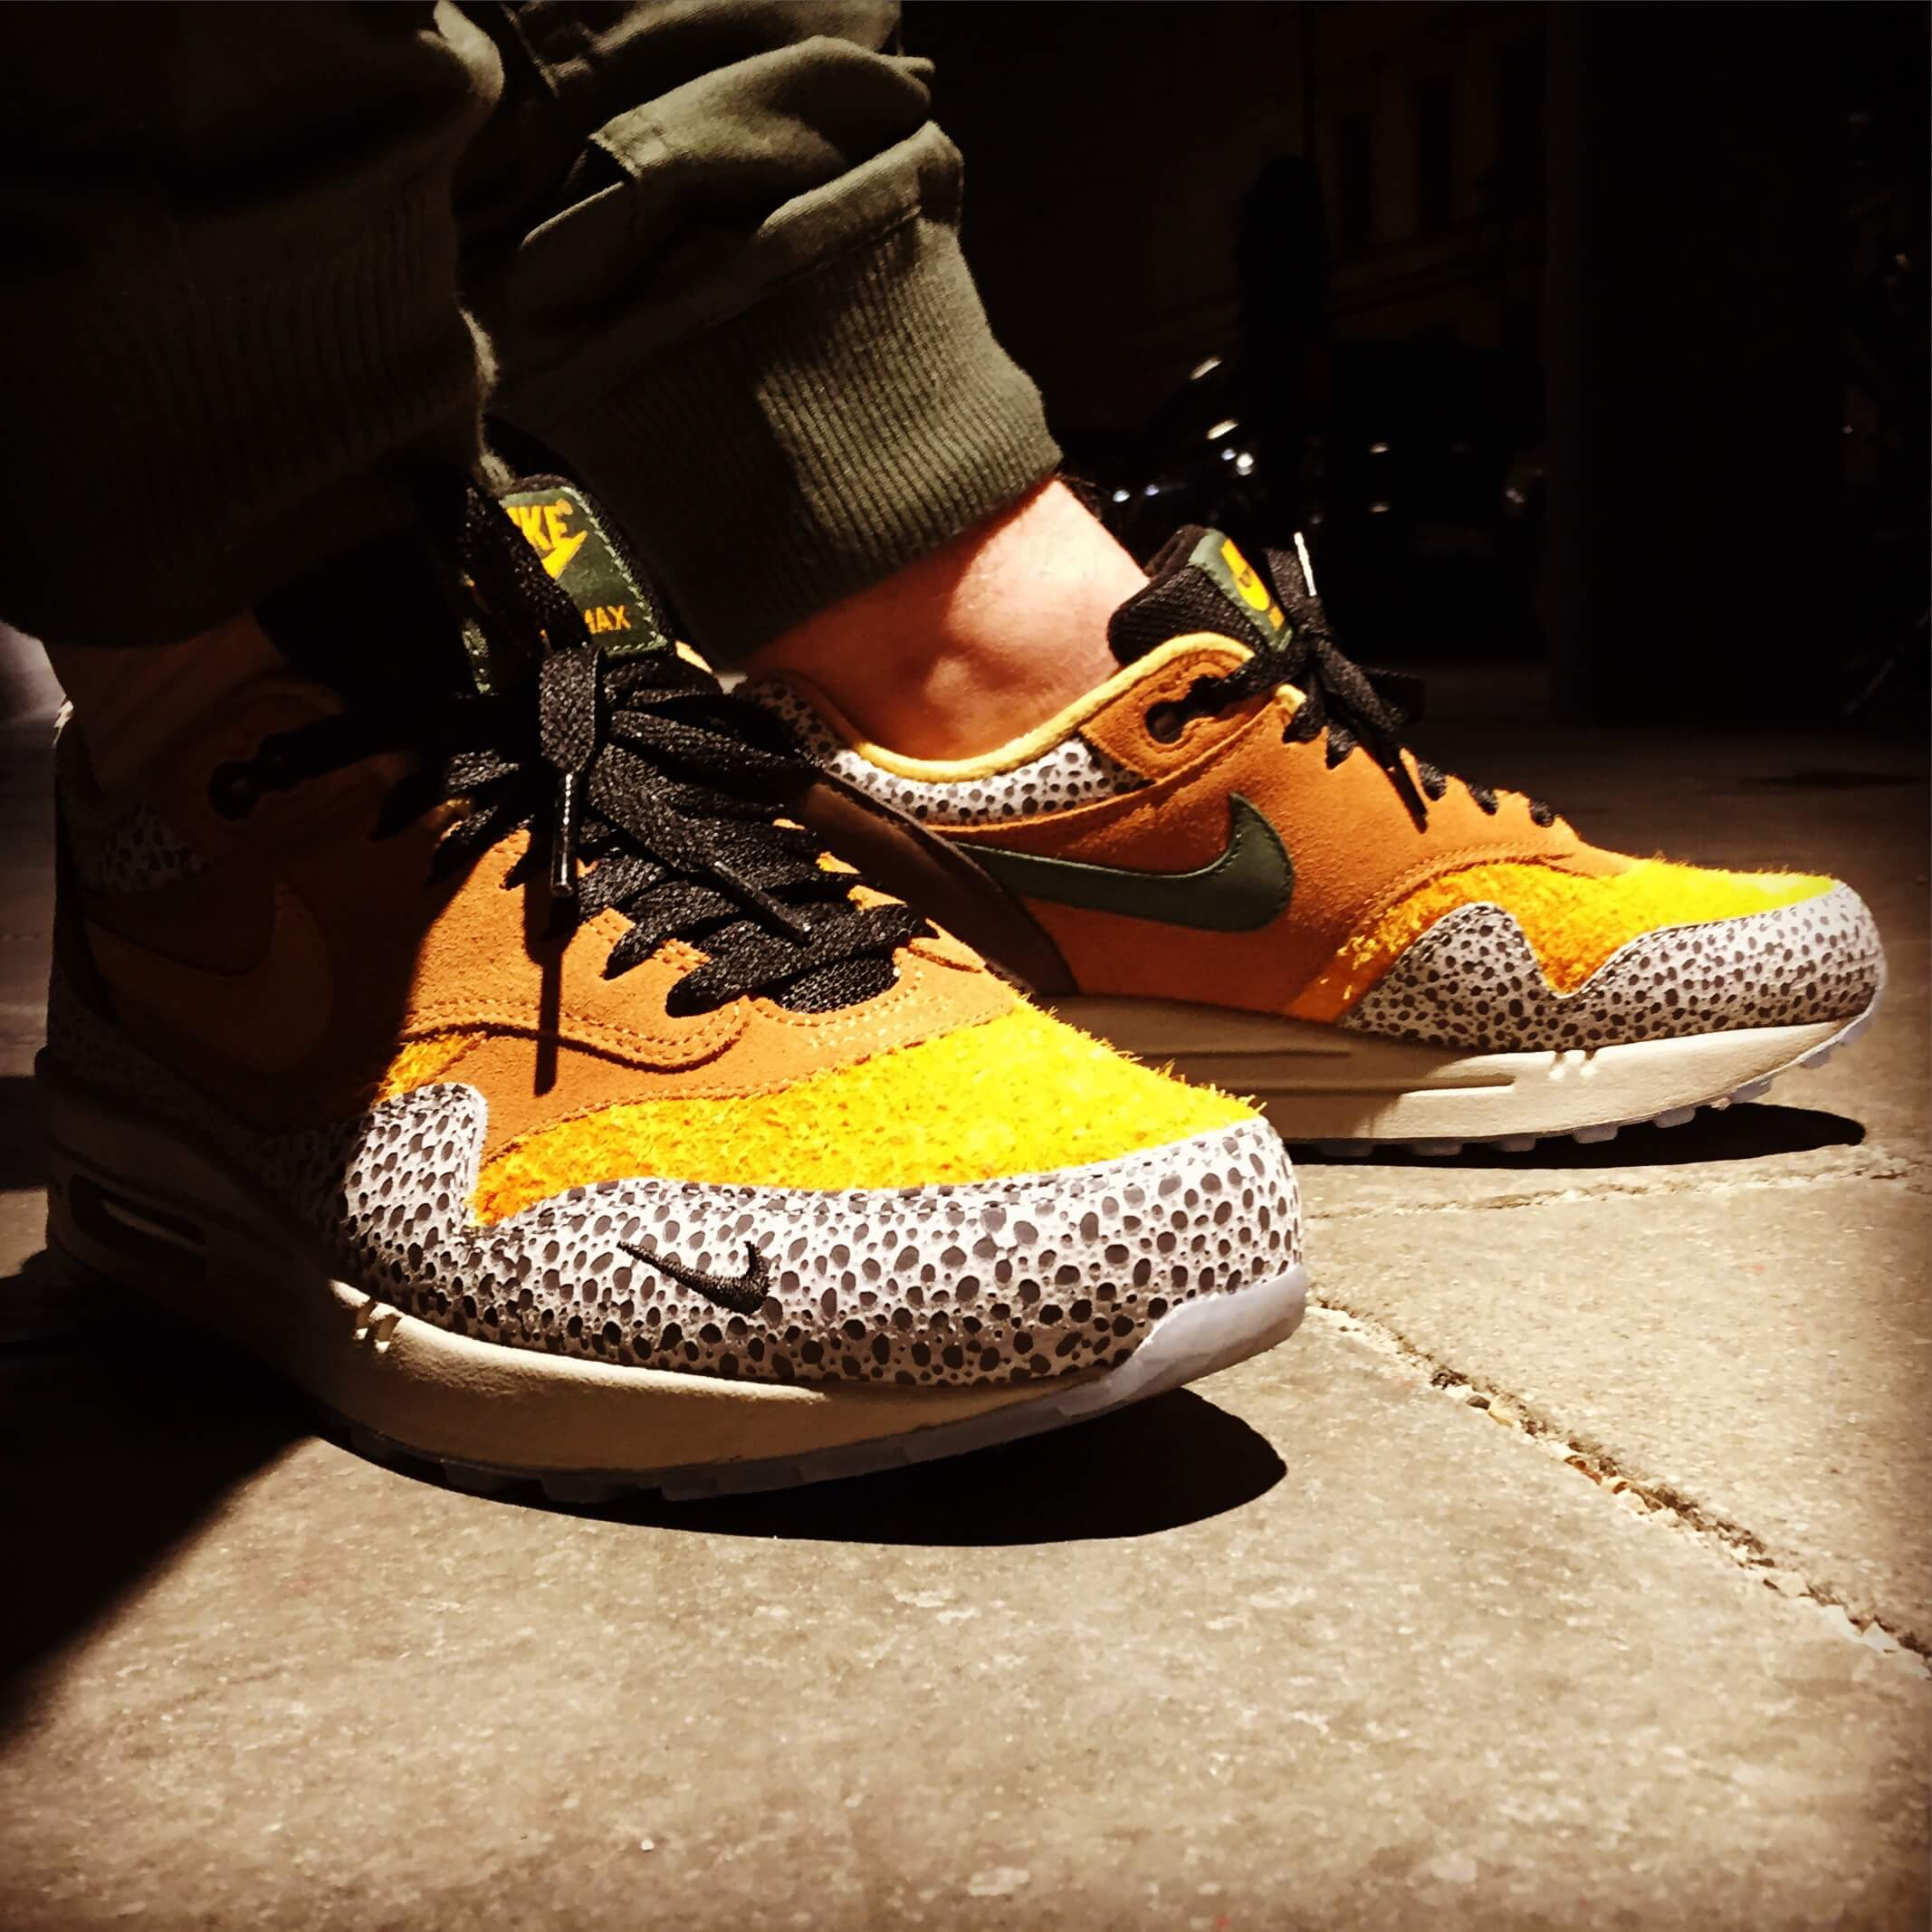 Nike-Air-Max-1-Safari-x-Atmos-Side-View-Benstah-Onfeet